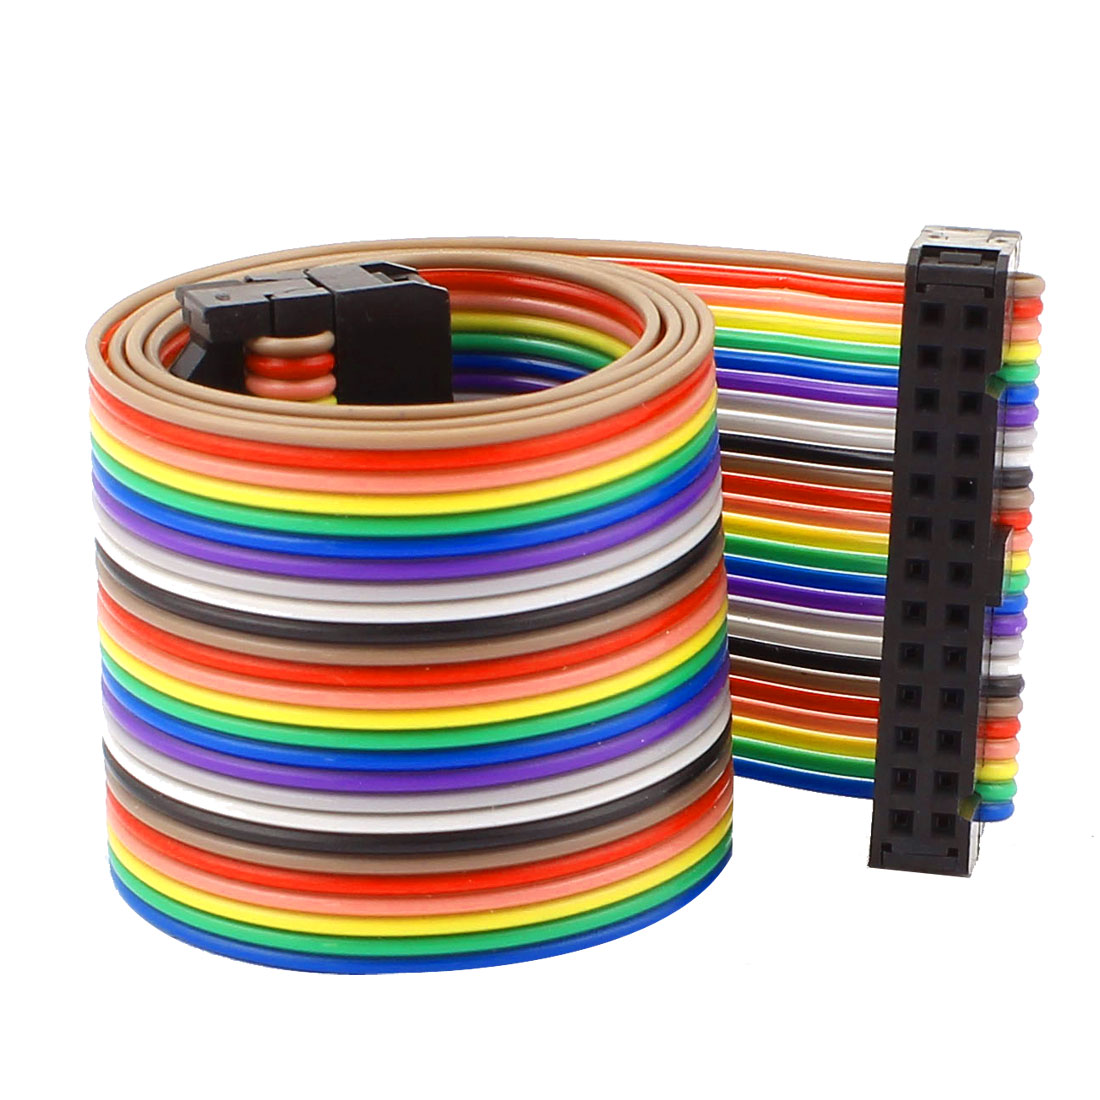 48cm 26pin 2.54mm Female to Female Breadboard IDC Wire Cable